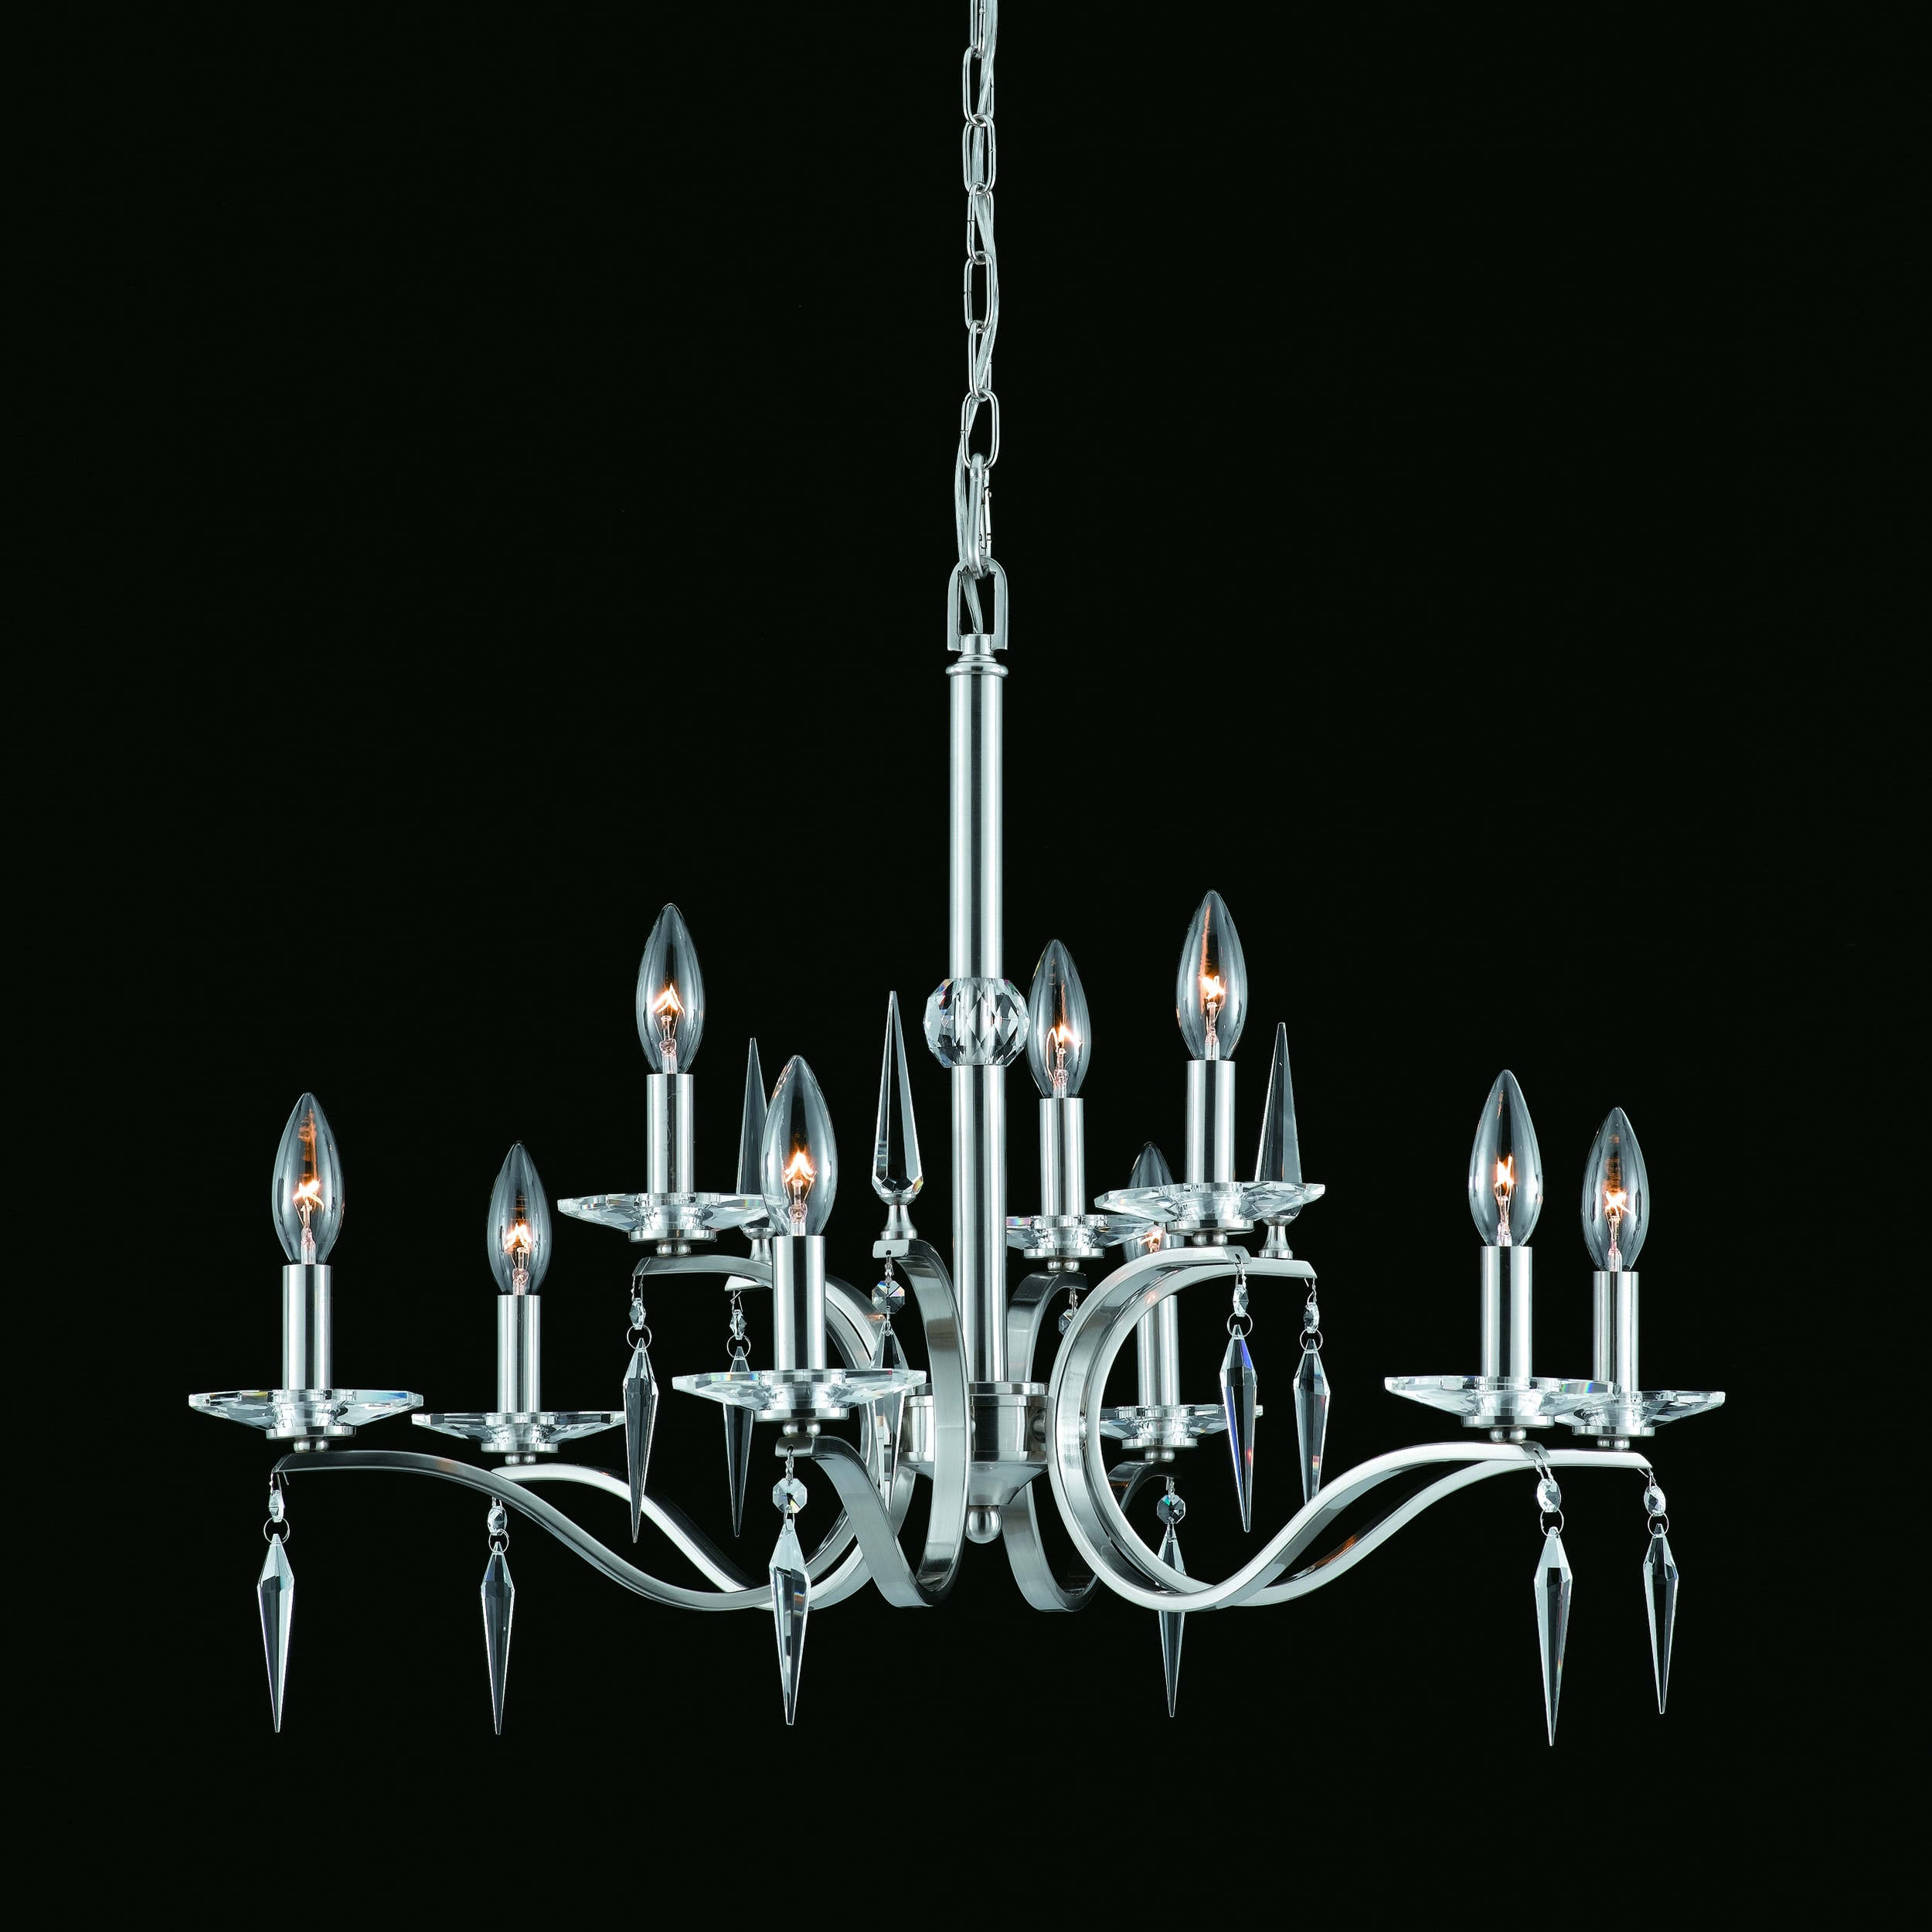 The Swan 9-light Chandelier in Satin Nickel Finish - Thumbnail 0